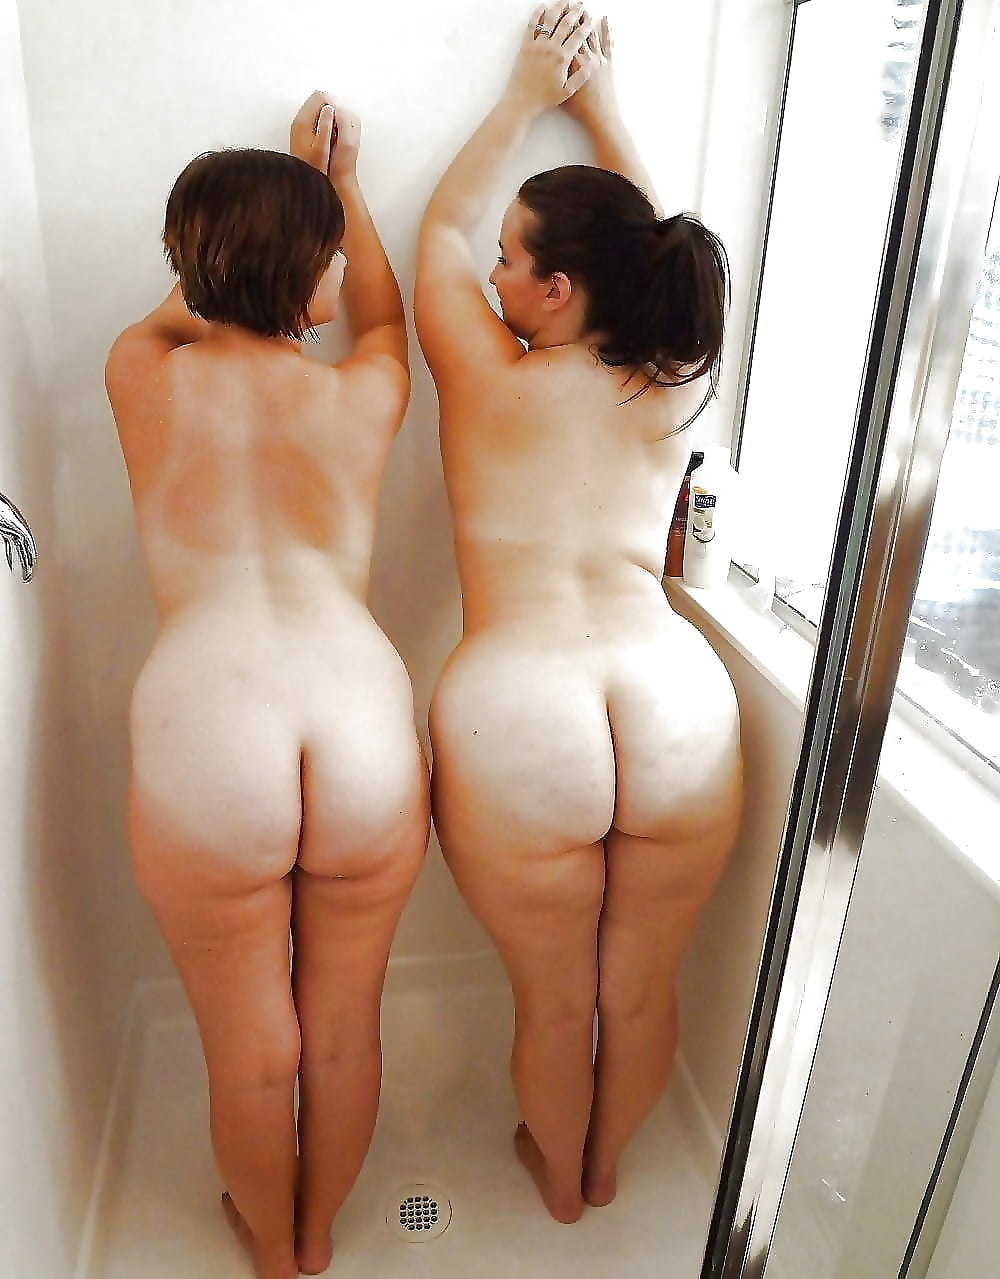 nude-sisters-ass-hot-joely-fisher-breasts